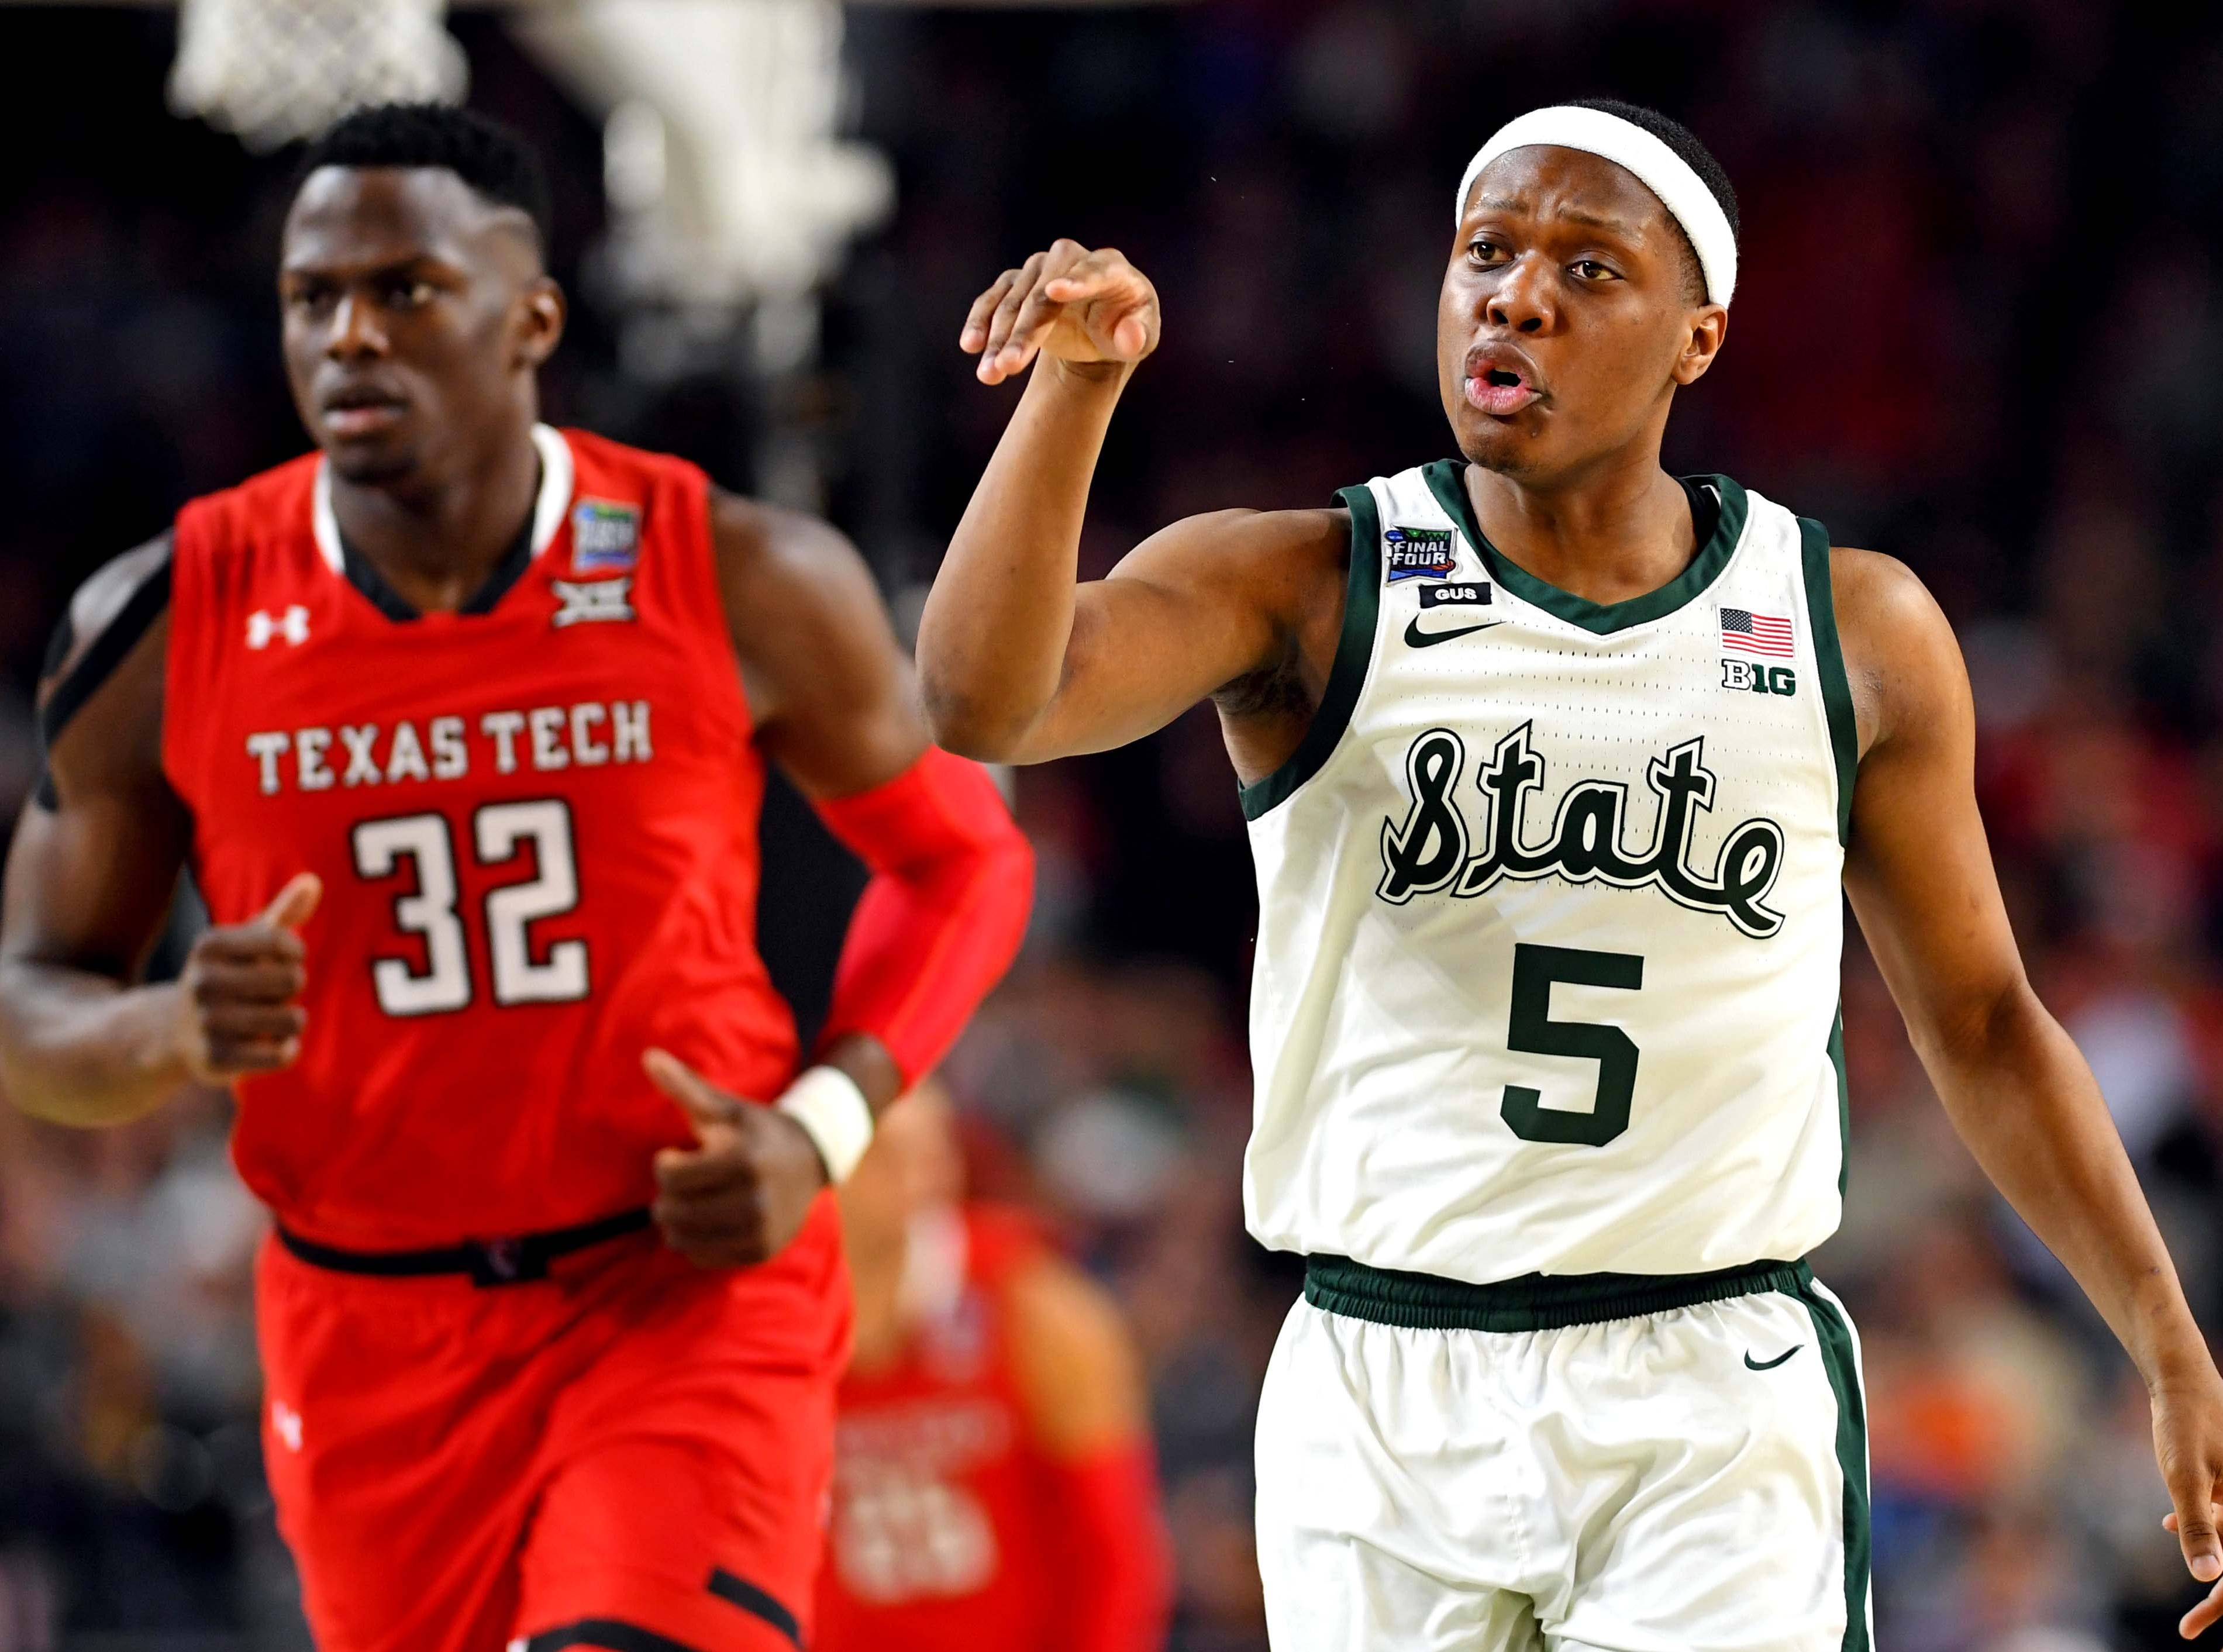 Apr 6, 2019; Minneapolis, MN, USA; Michigan State Spartans guard Cassius Winston (5) reacts after a play during the first half against the Texas Tech Red Raiders in the semifinals of the 2019 men's Final Four at US Bank Stadium. Mandatory Credit: Bob Donnan-USA TODAY Sports